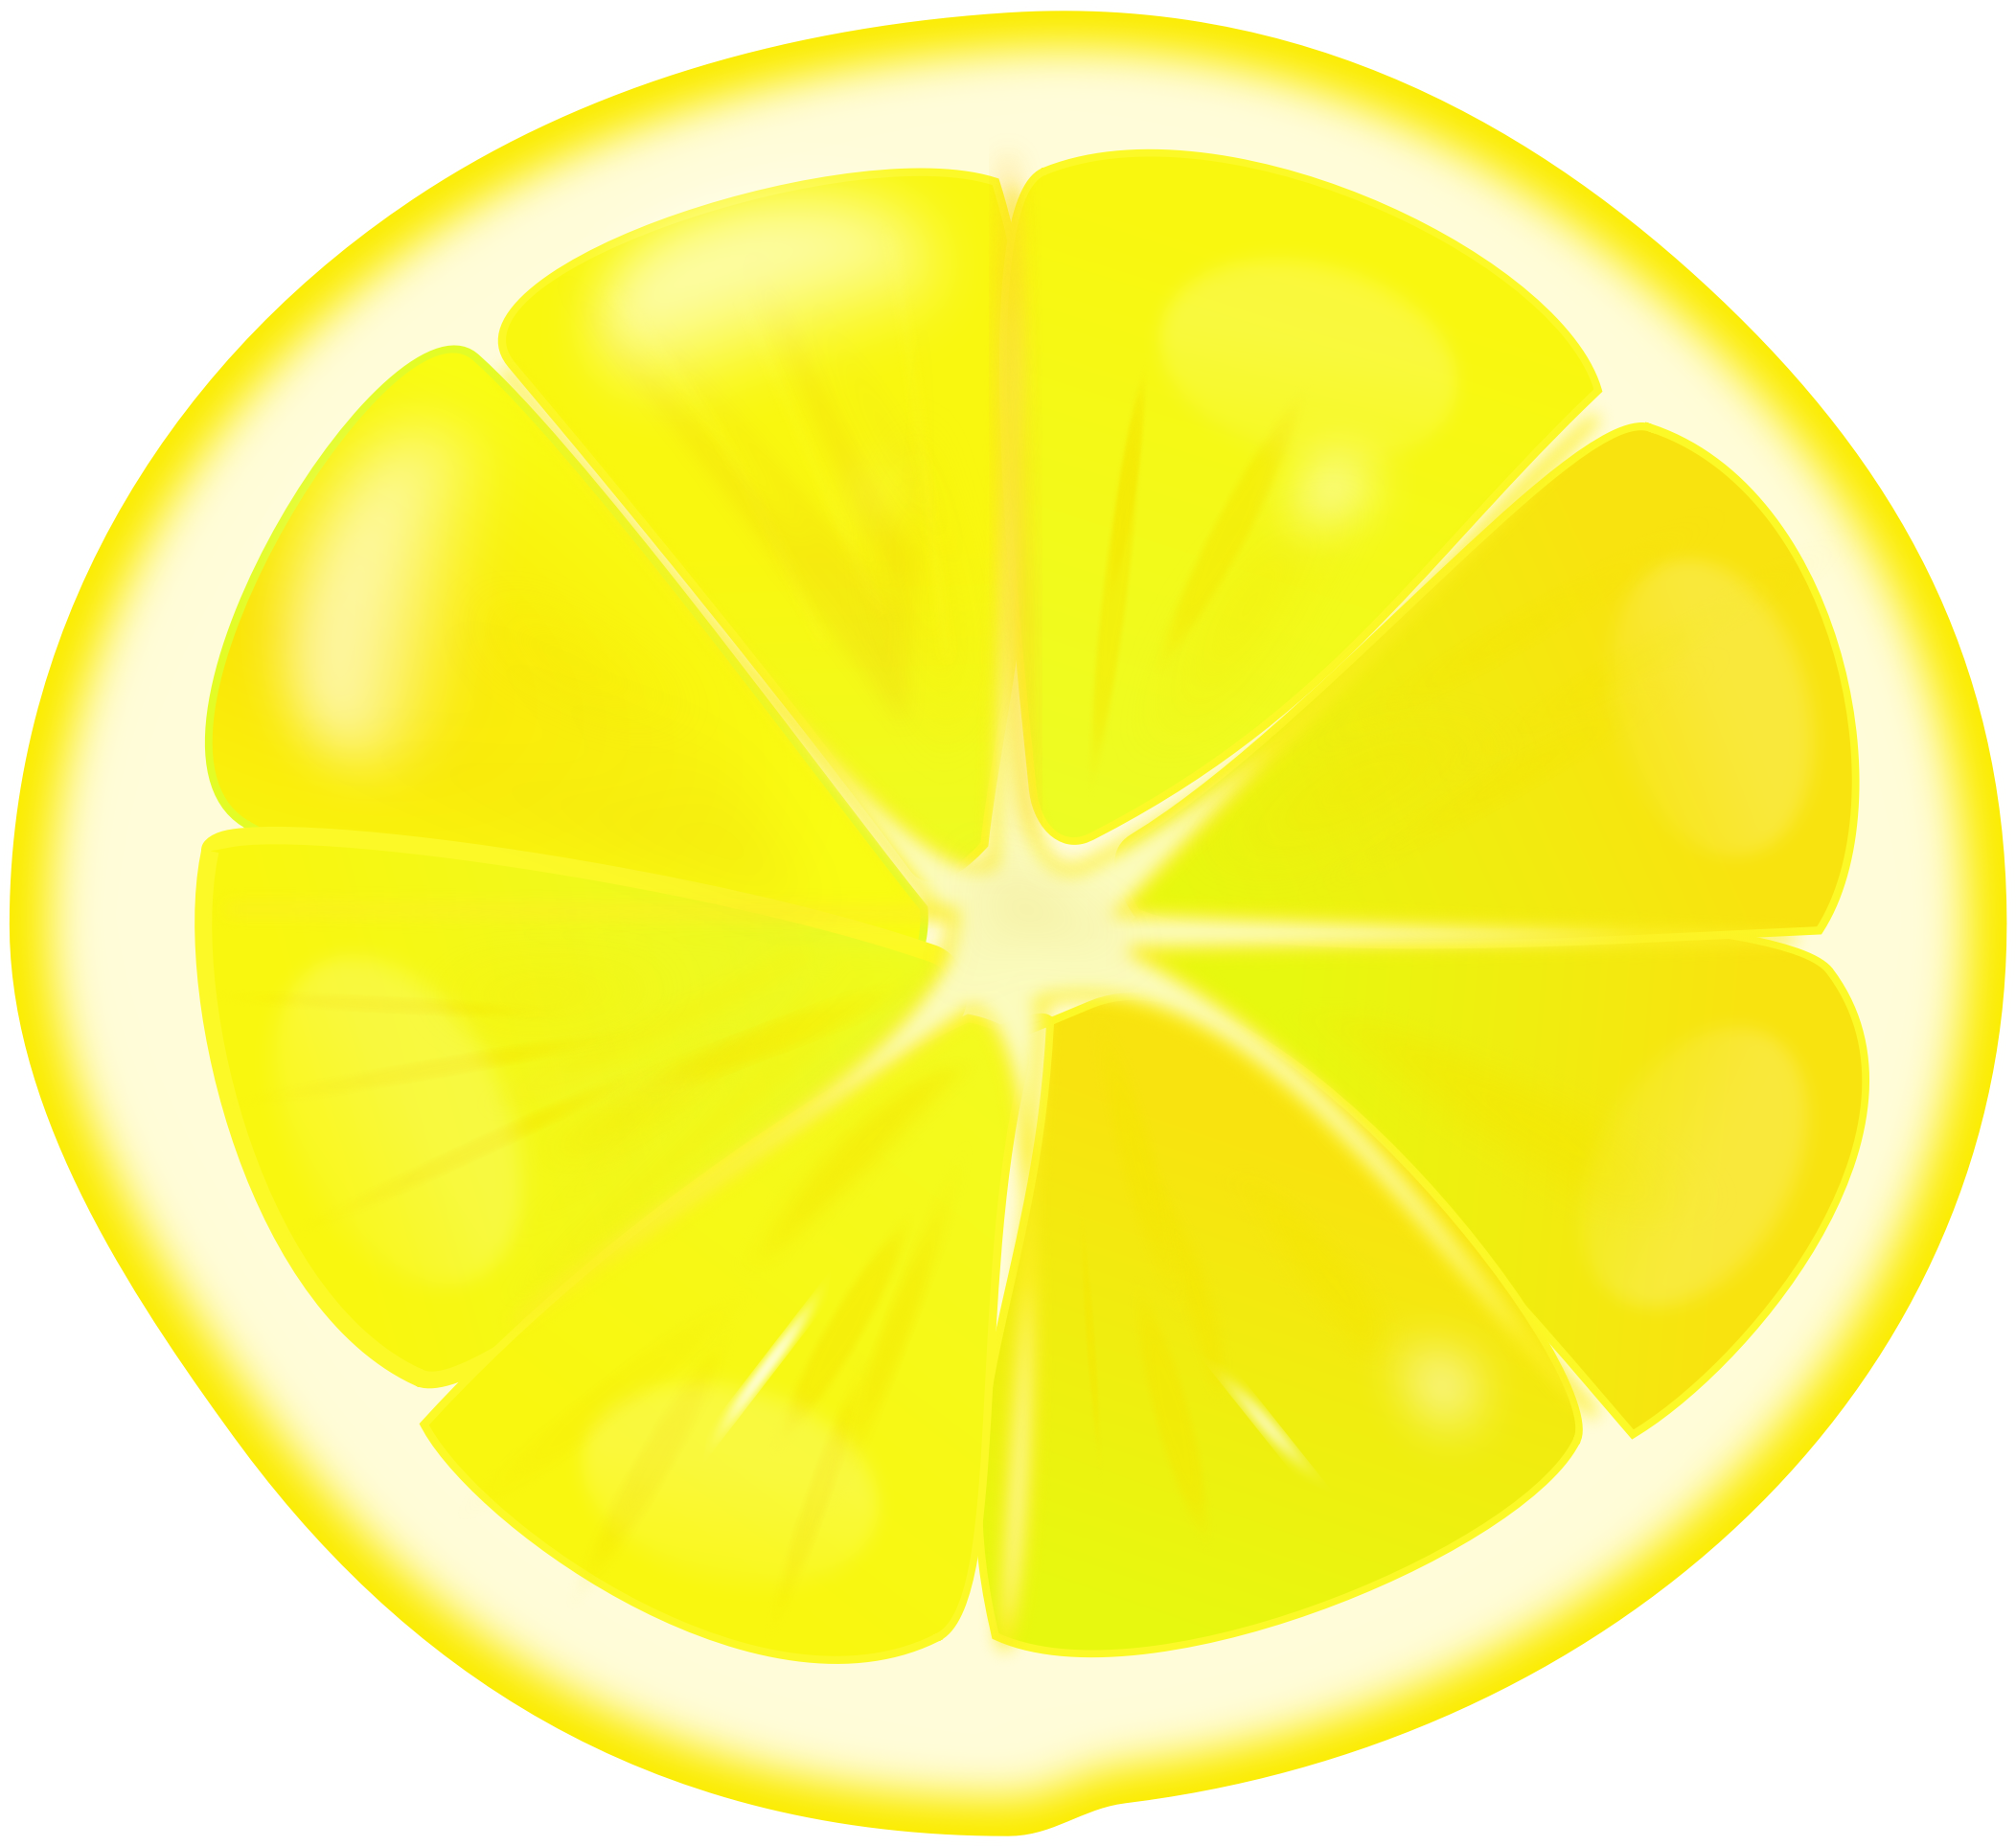 Lemon slice by Firkin